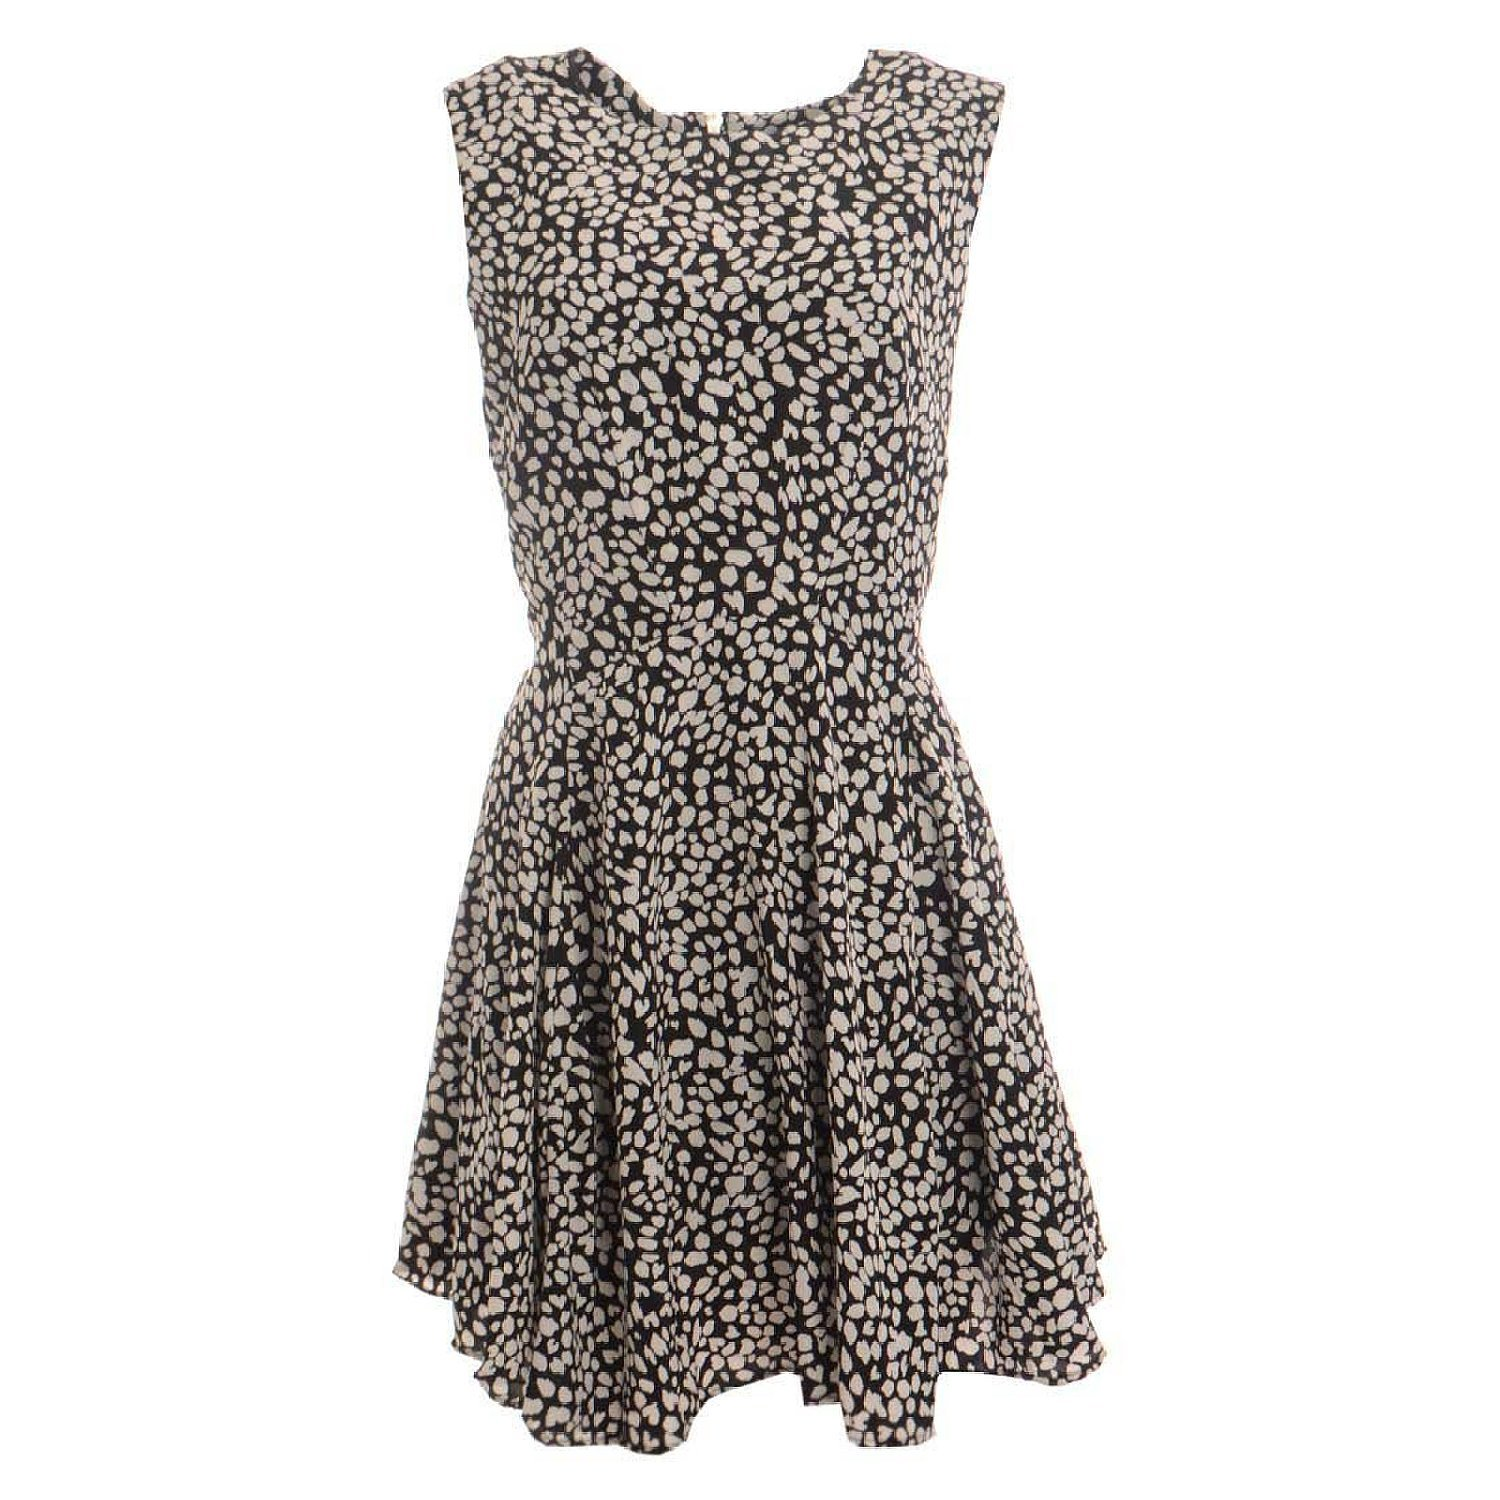 Bar III Black Fit and Flare Dress with Animal Prints Size M